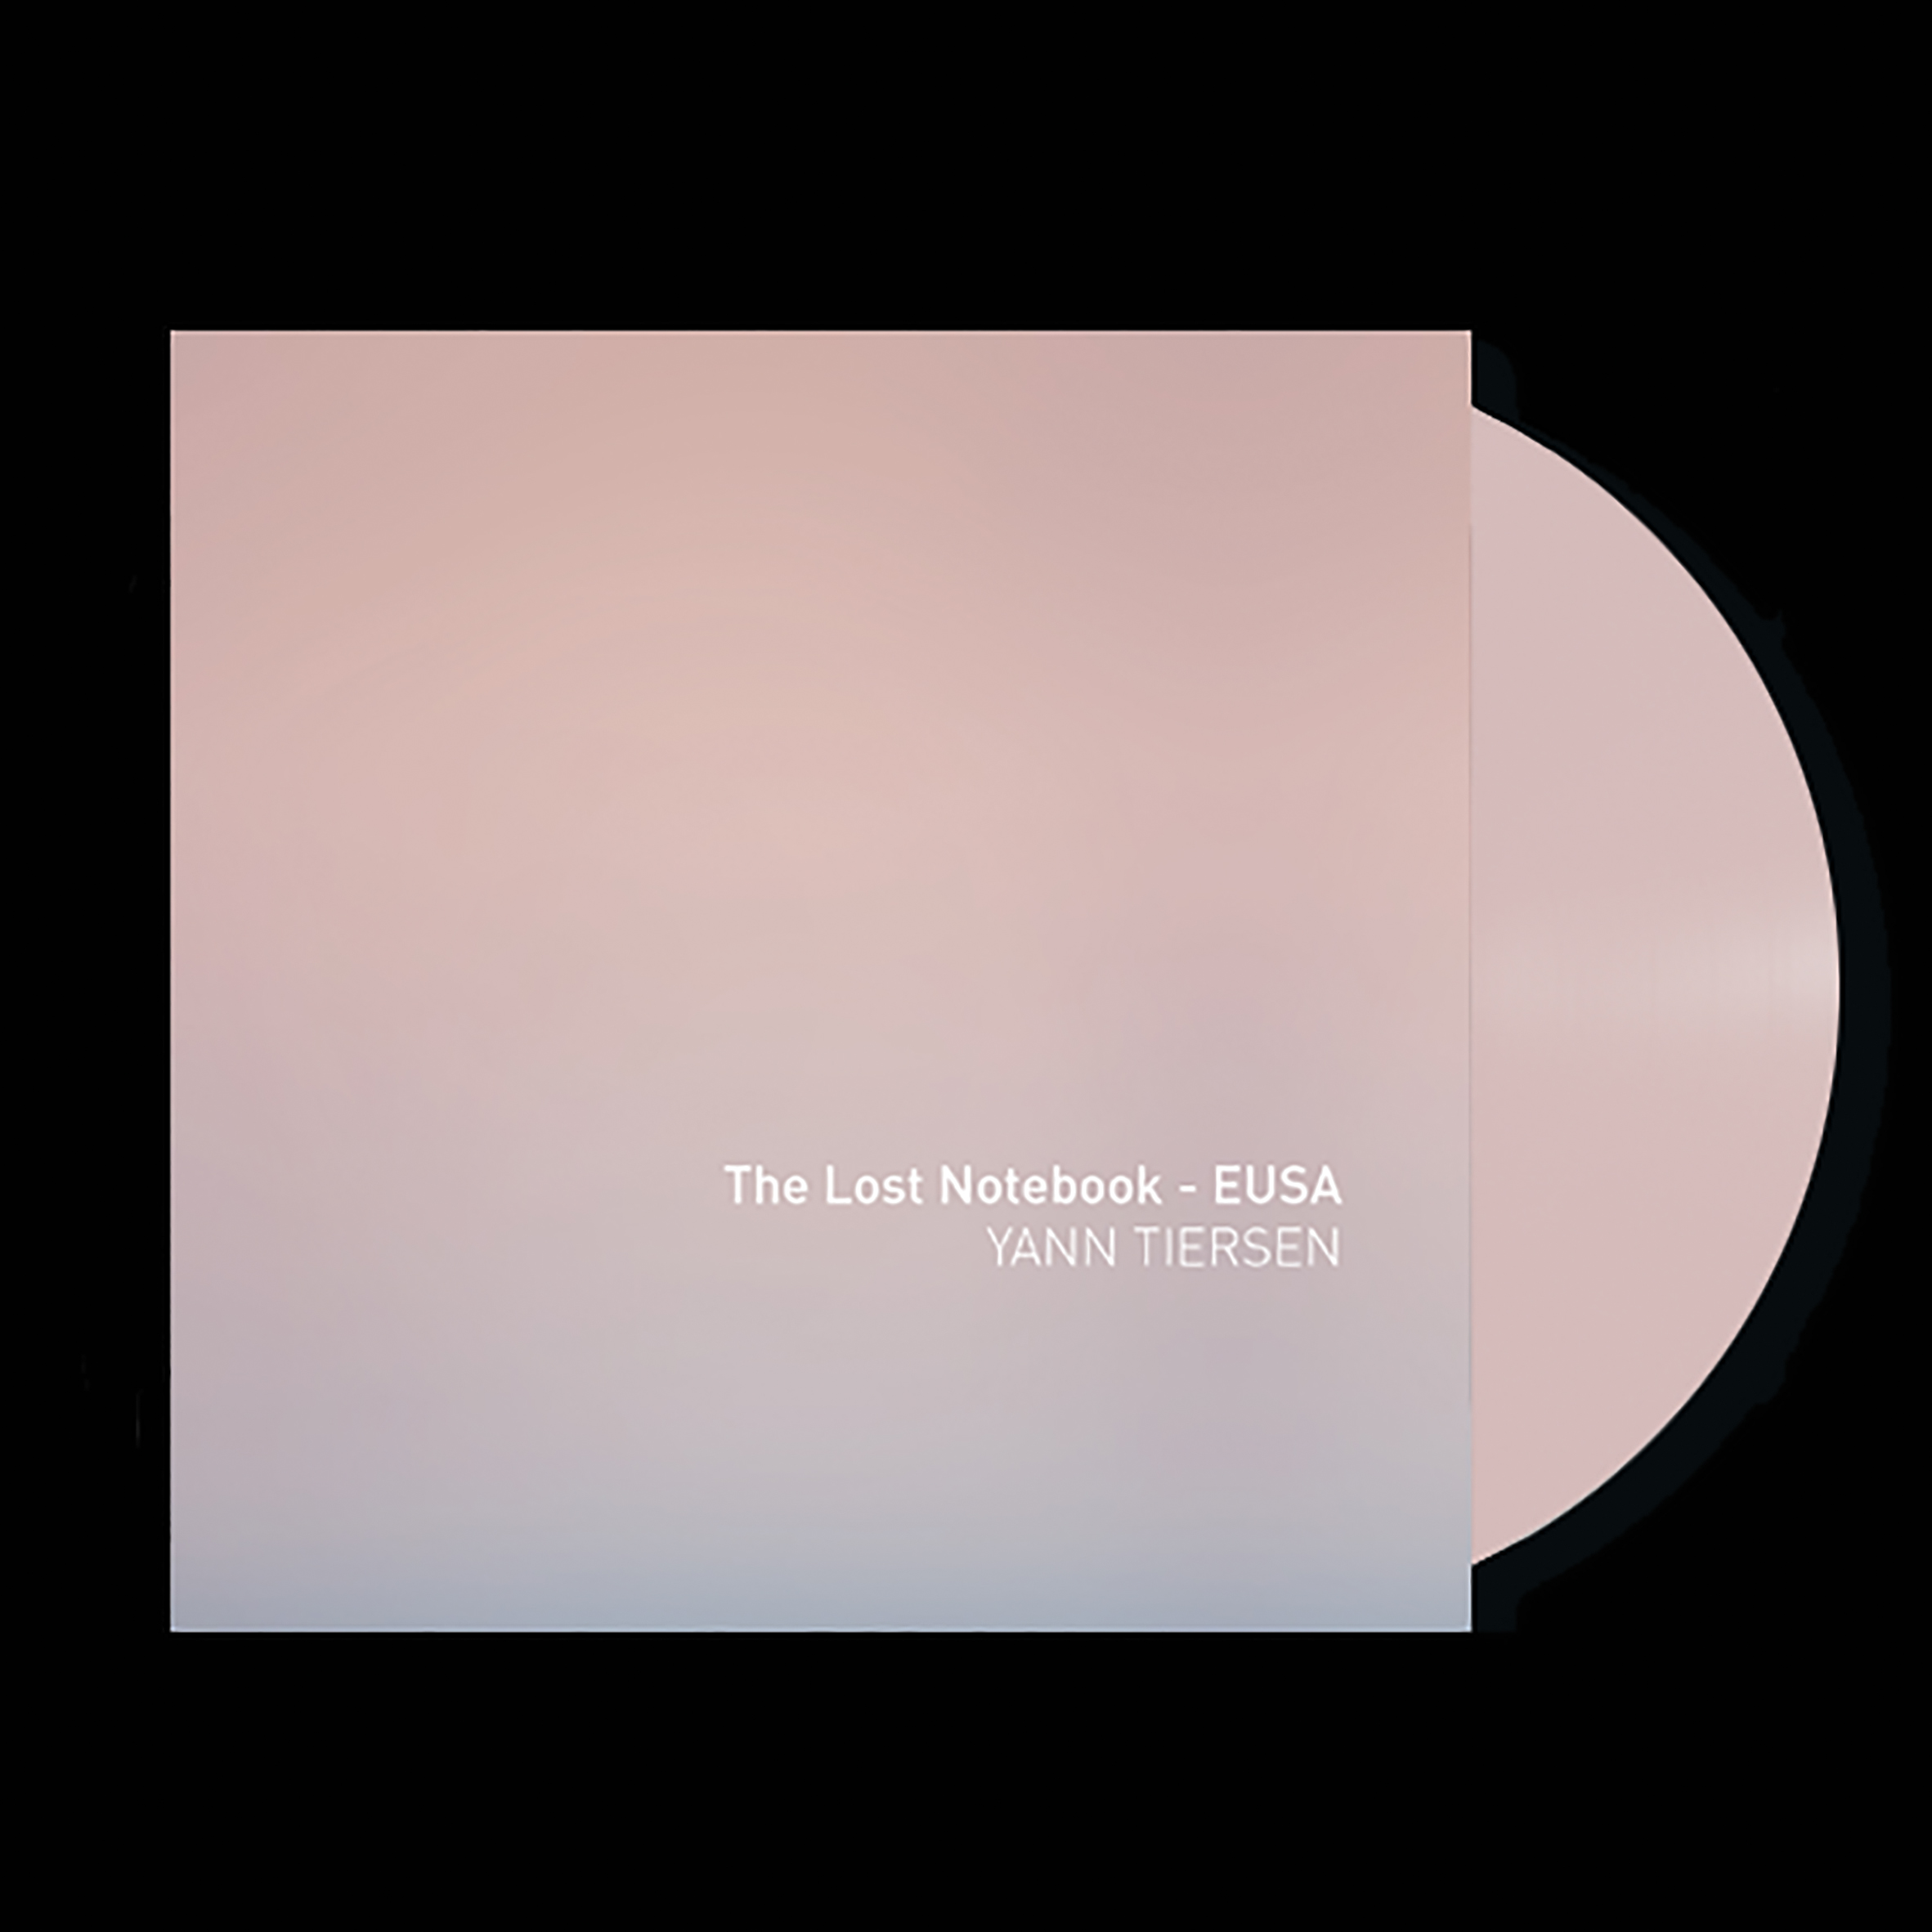 "The Lost Notebook EUSA – 7"" Vinyl (Comes with digital download) - Yann Tiersen"